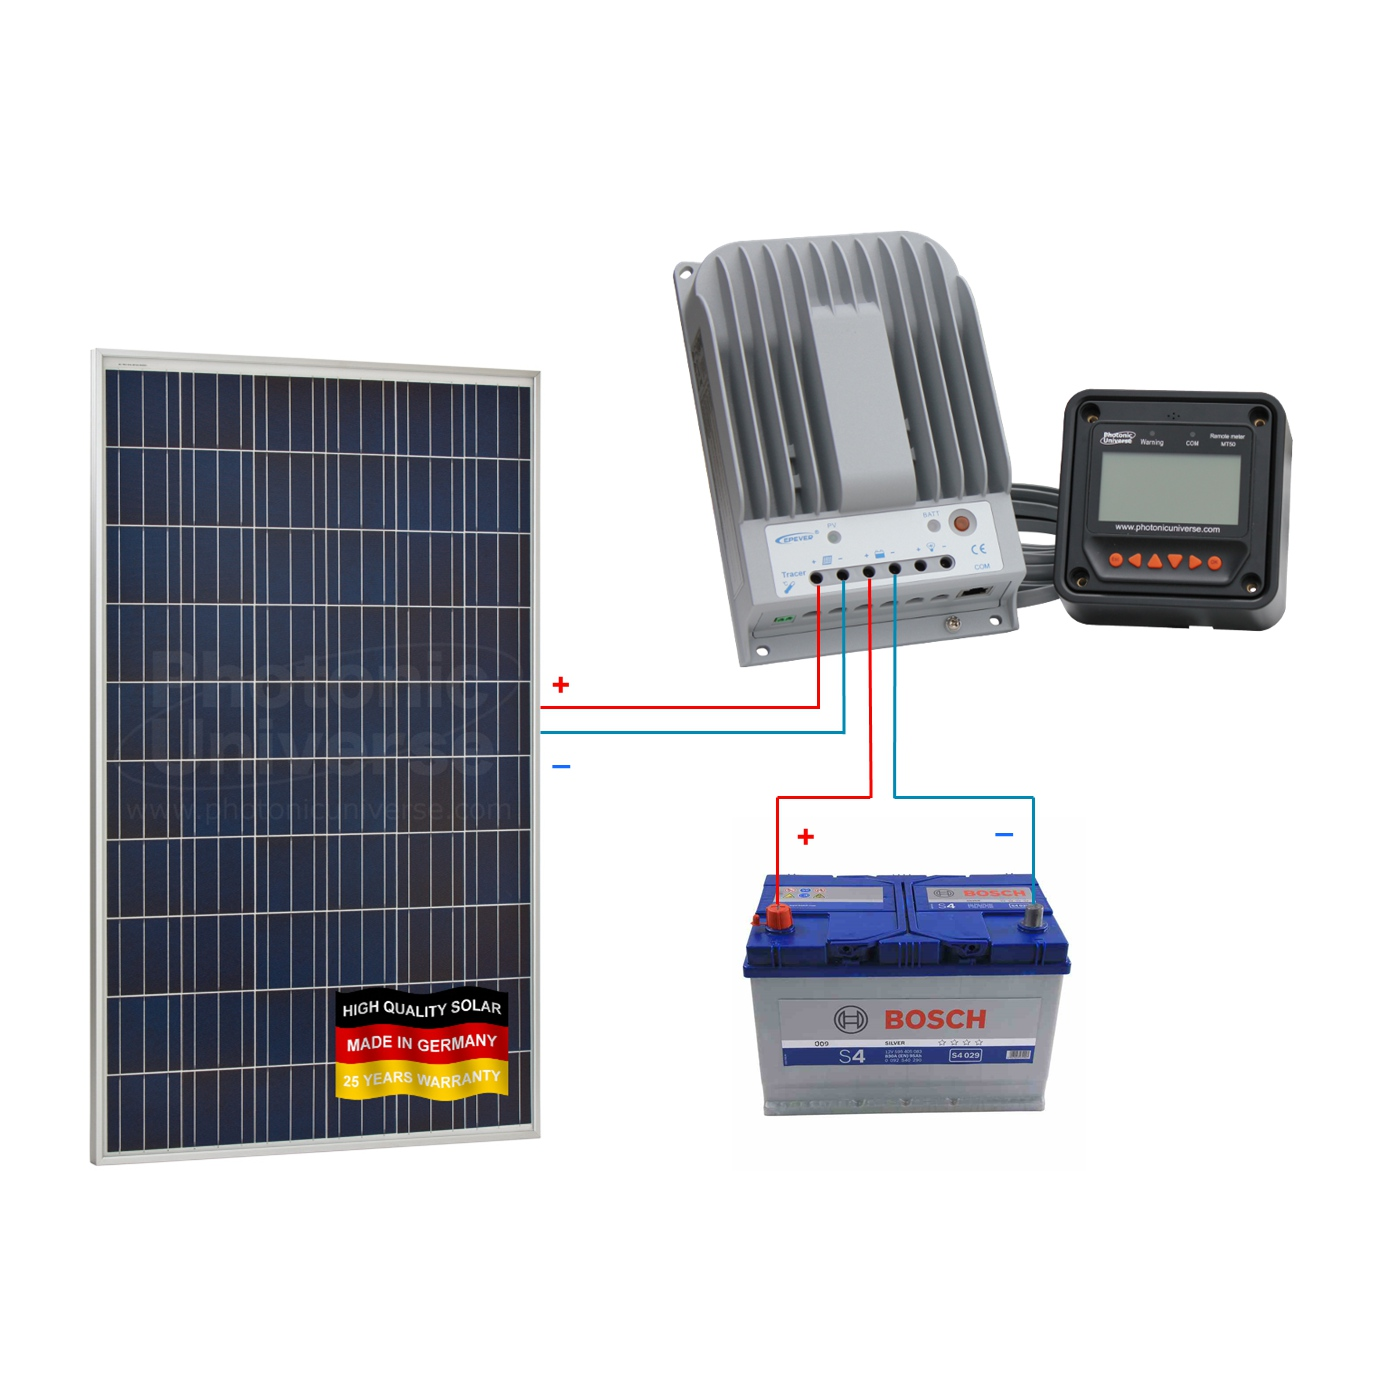 solar battery wiring diagram for caravan charger somurich telemecanique reversing contactor 280w 12v 24v panel charging kit motorhome